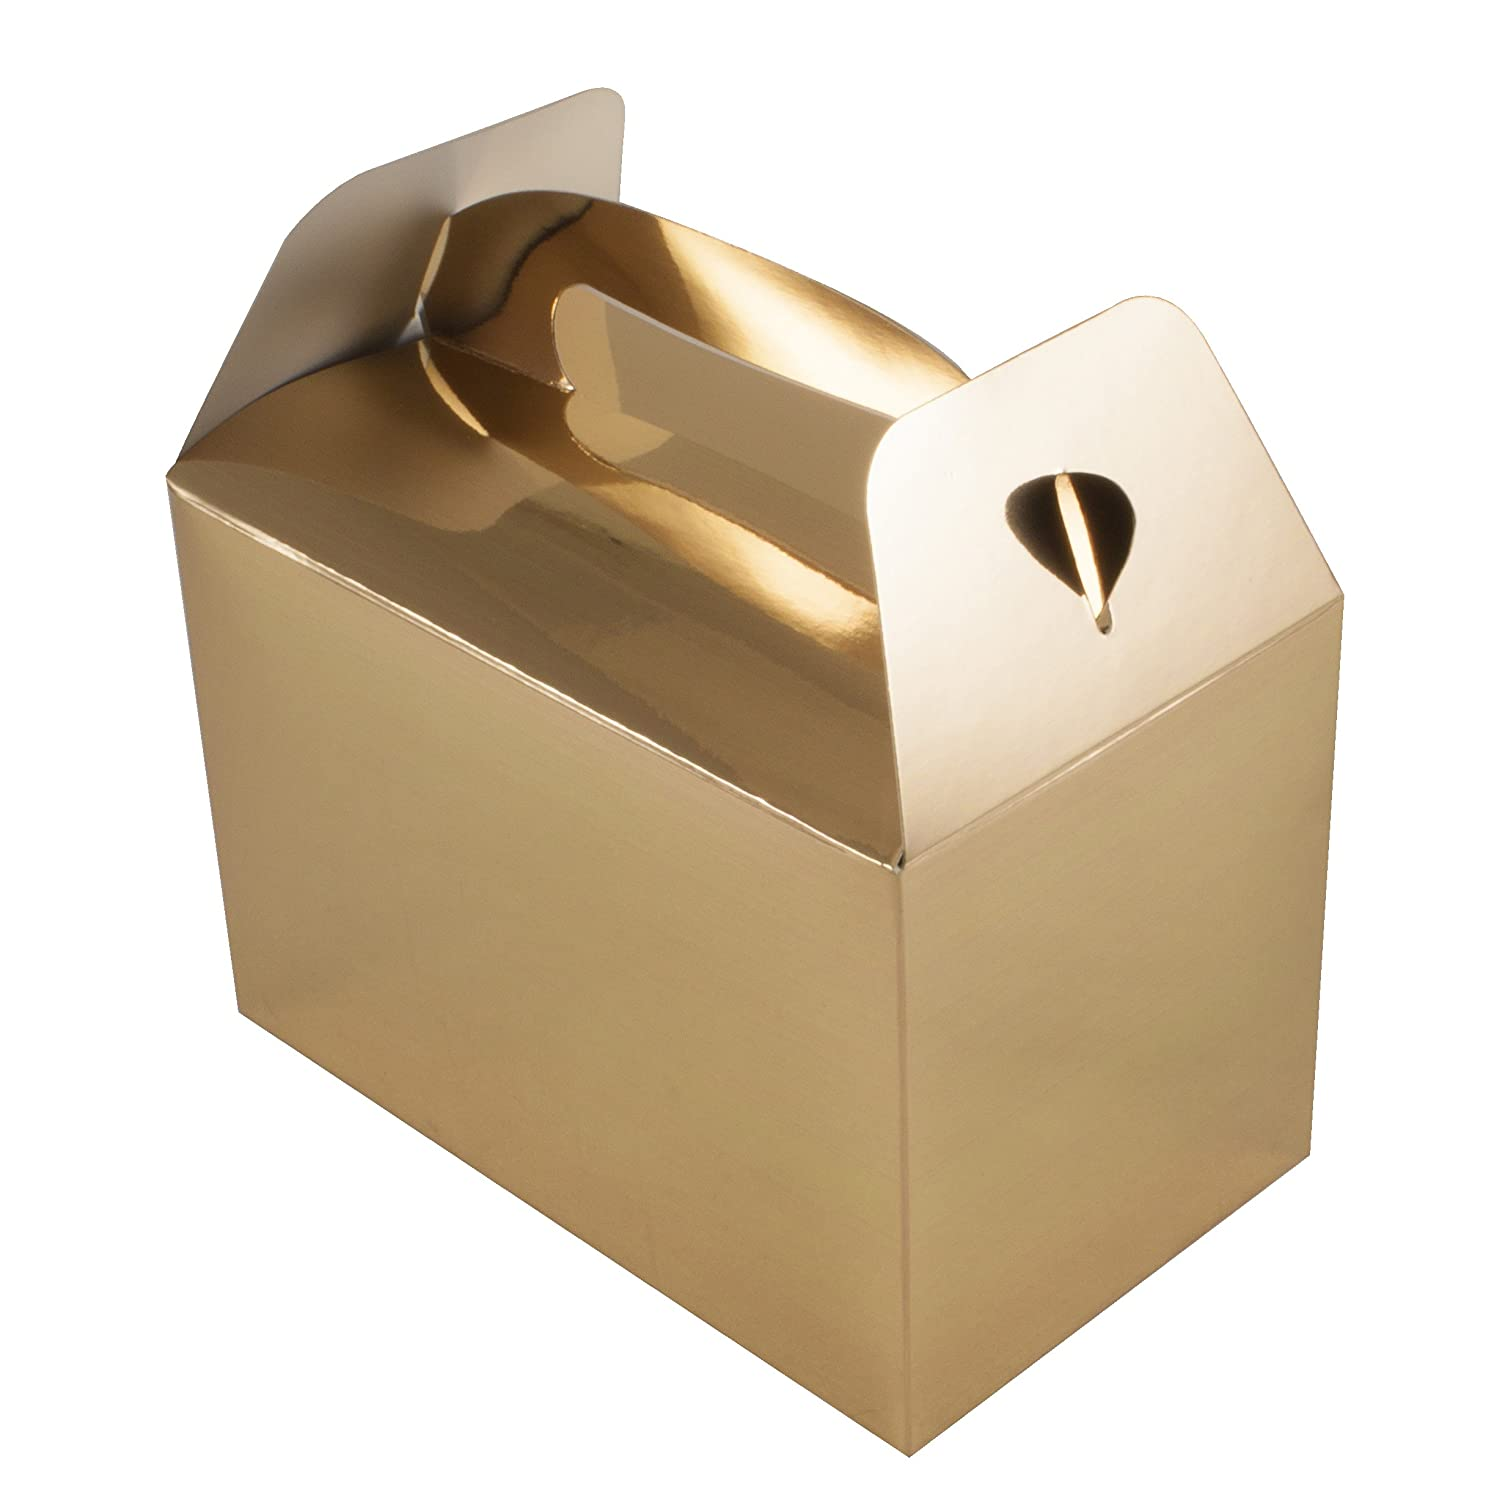 Oaktree Party Box, Carta, Oro Metallizzato, 24.6  x 20.3  x 1.8  cm 24.6 x 20.3 x 1.8 cm OA641945